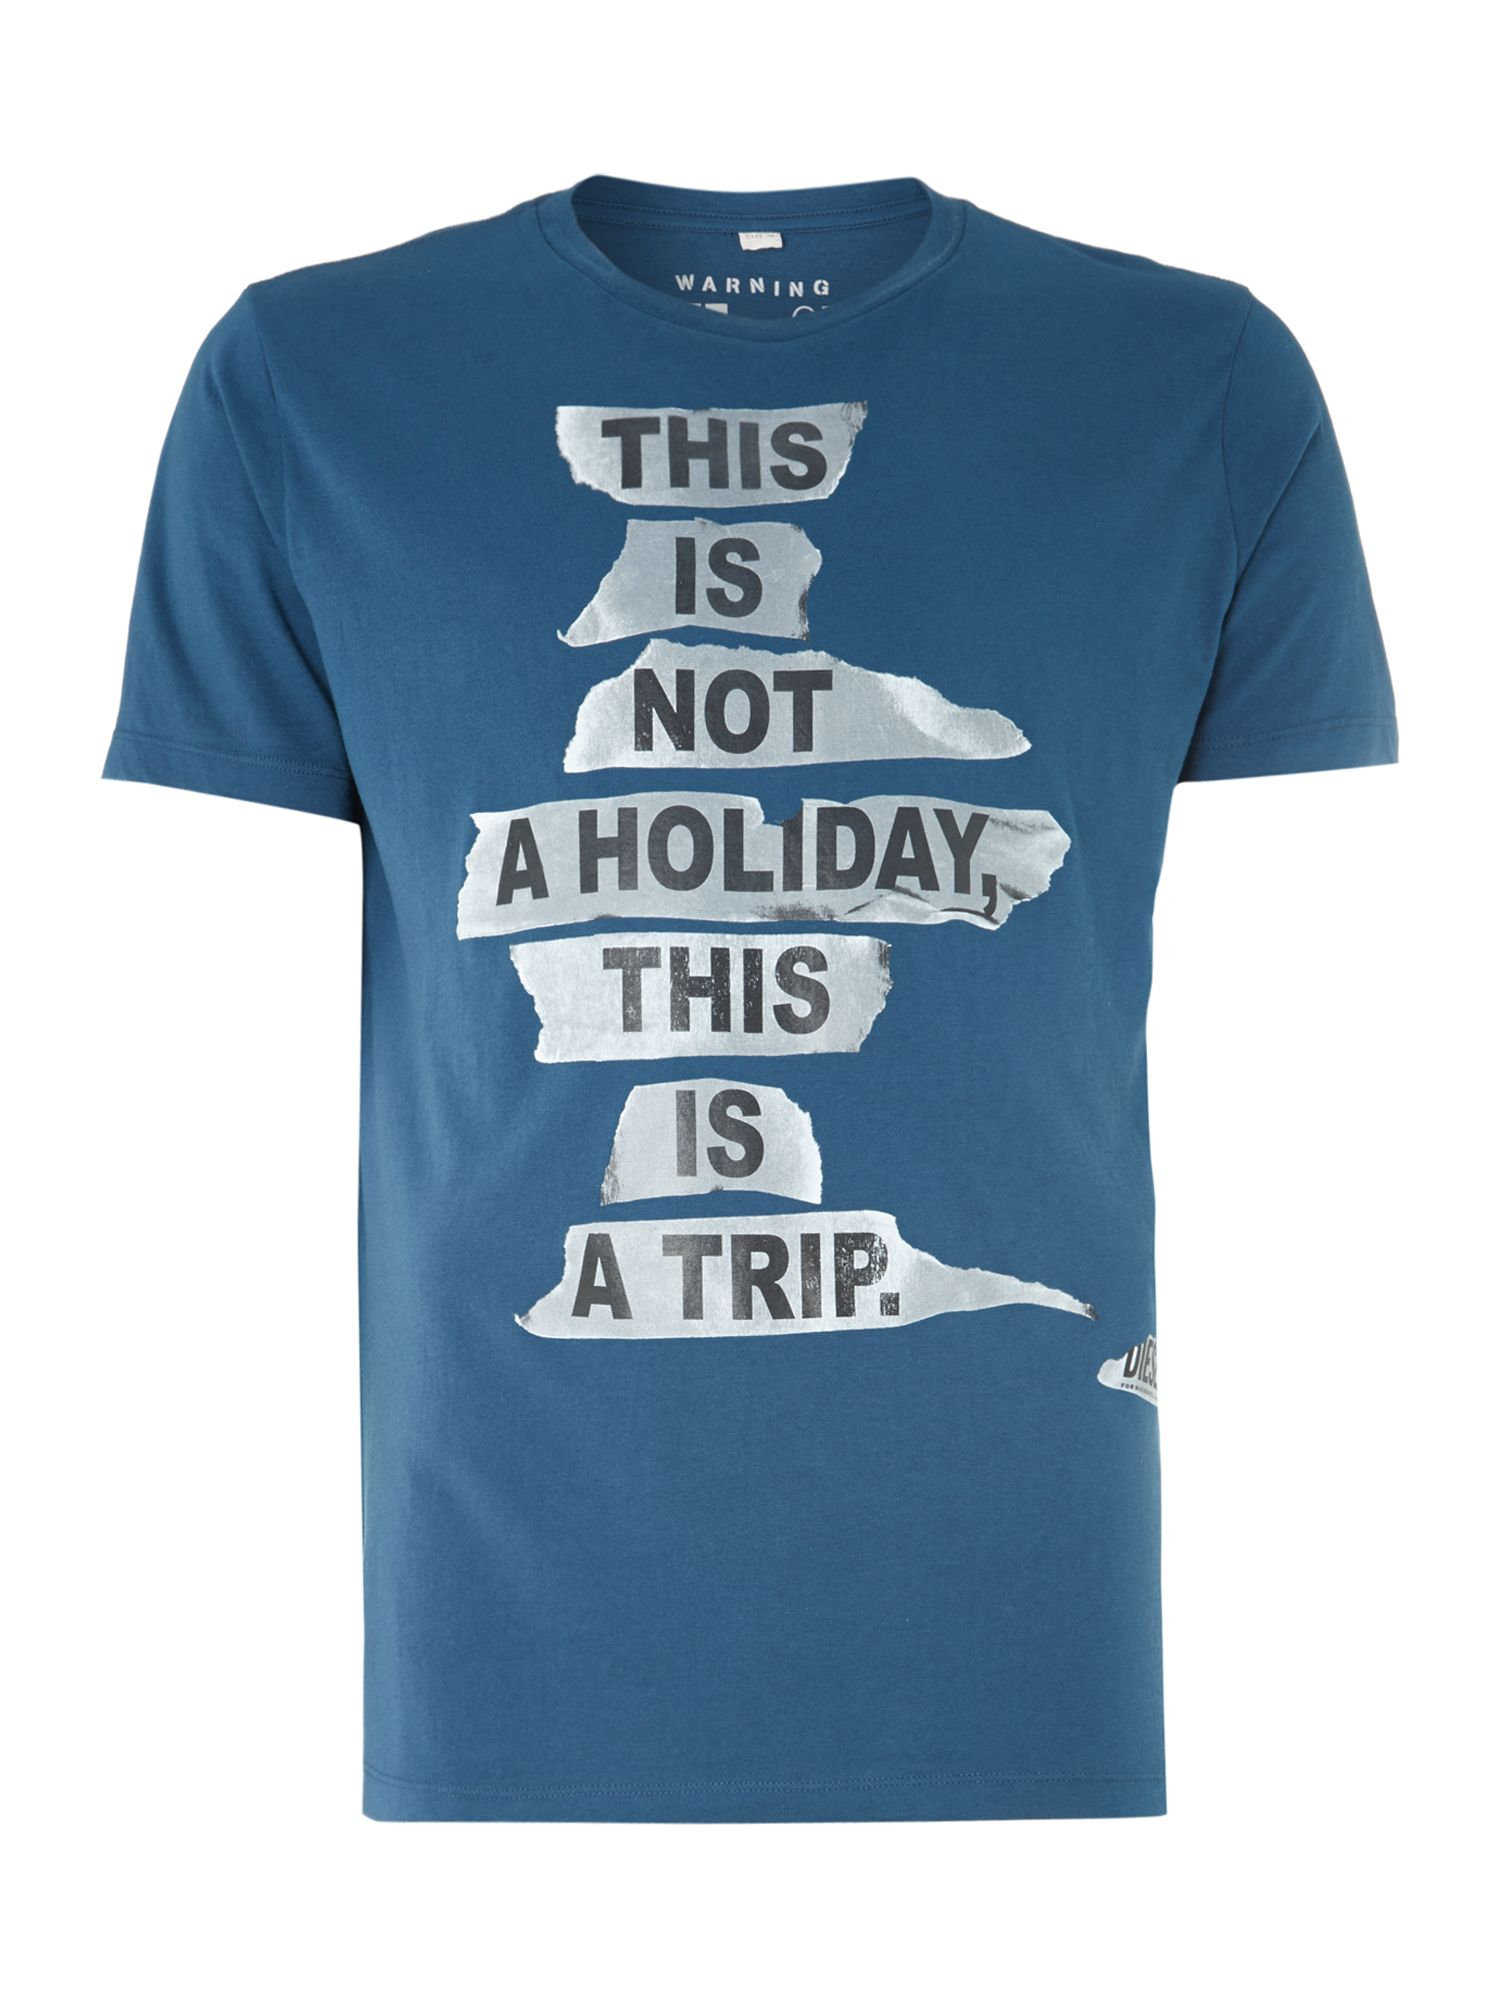 T-this this is not a holiday t shirt